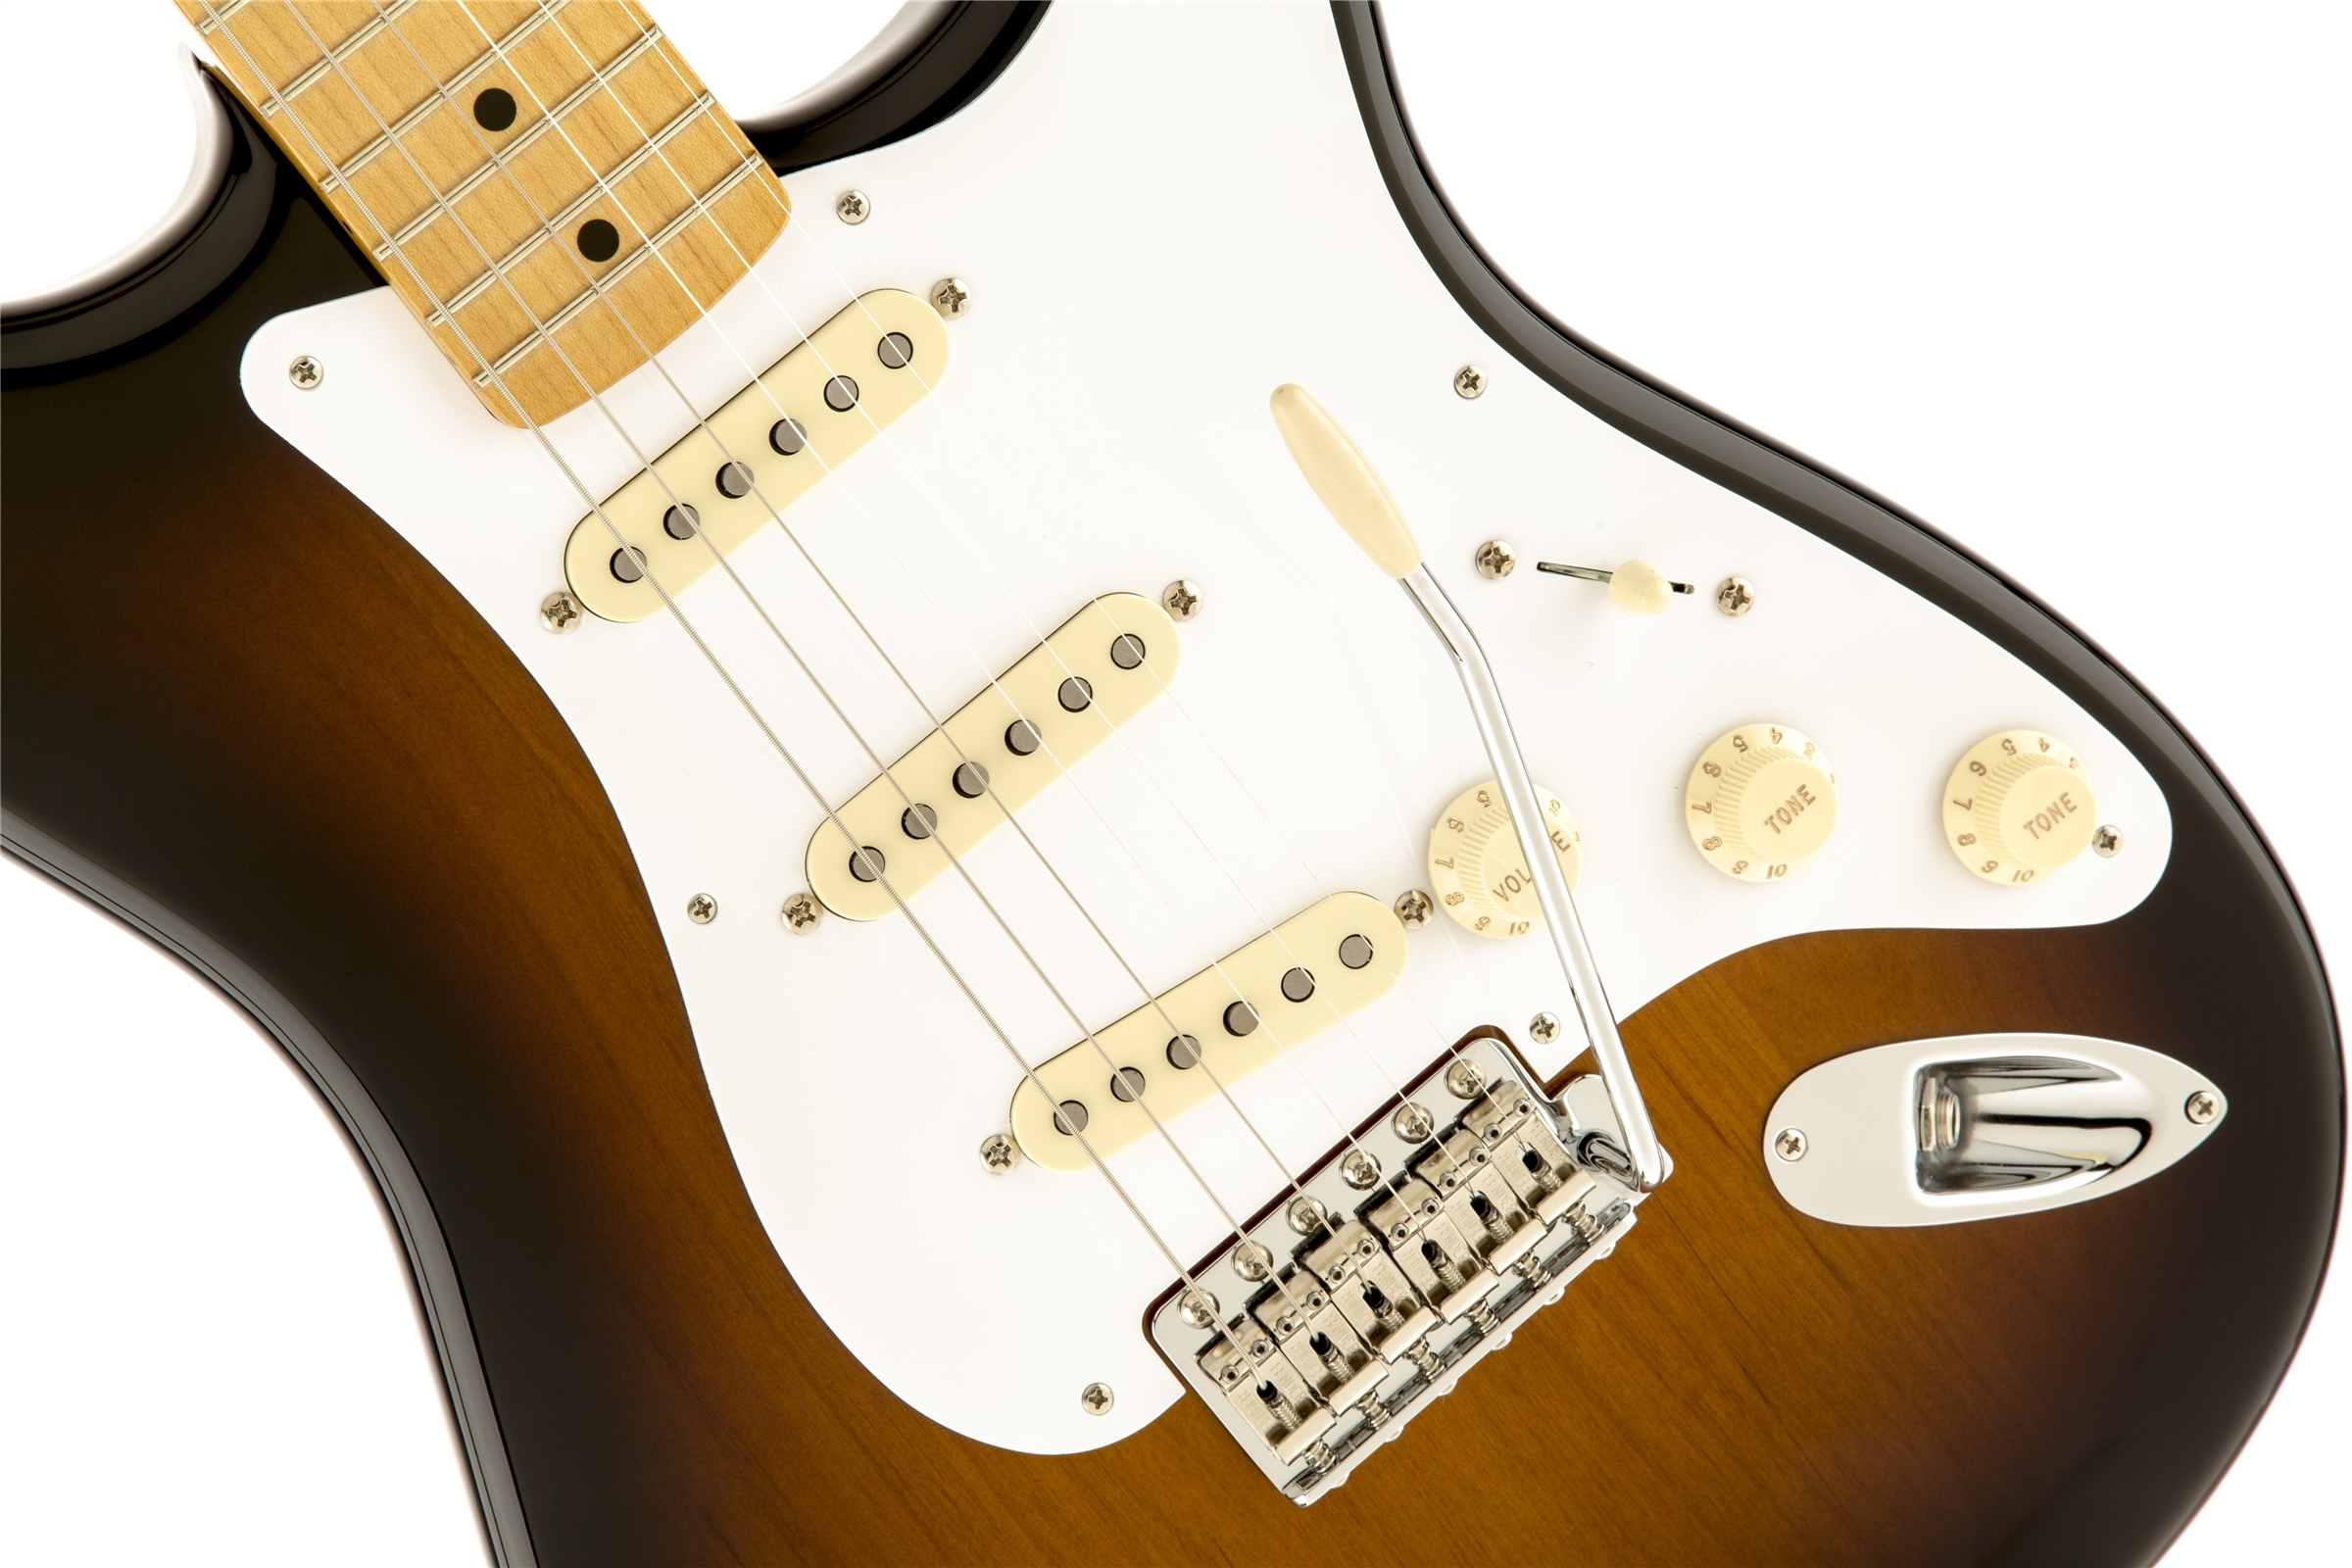 Comfortable Strat Style Guitar Small Ibanez Wiring Solid Dragonfire Pickups Wiring Diagram Les Paul 3 Pickup Wiring Youthful Dimarzio Color Code WhiteCar Alarm Installation Instructions Classic Series \u002750s Stratocaster® | Fender Electric Guitars